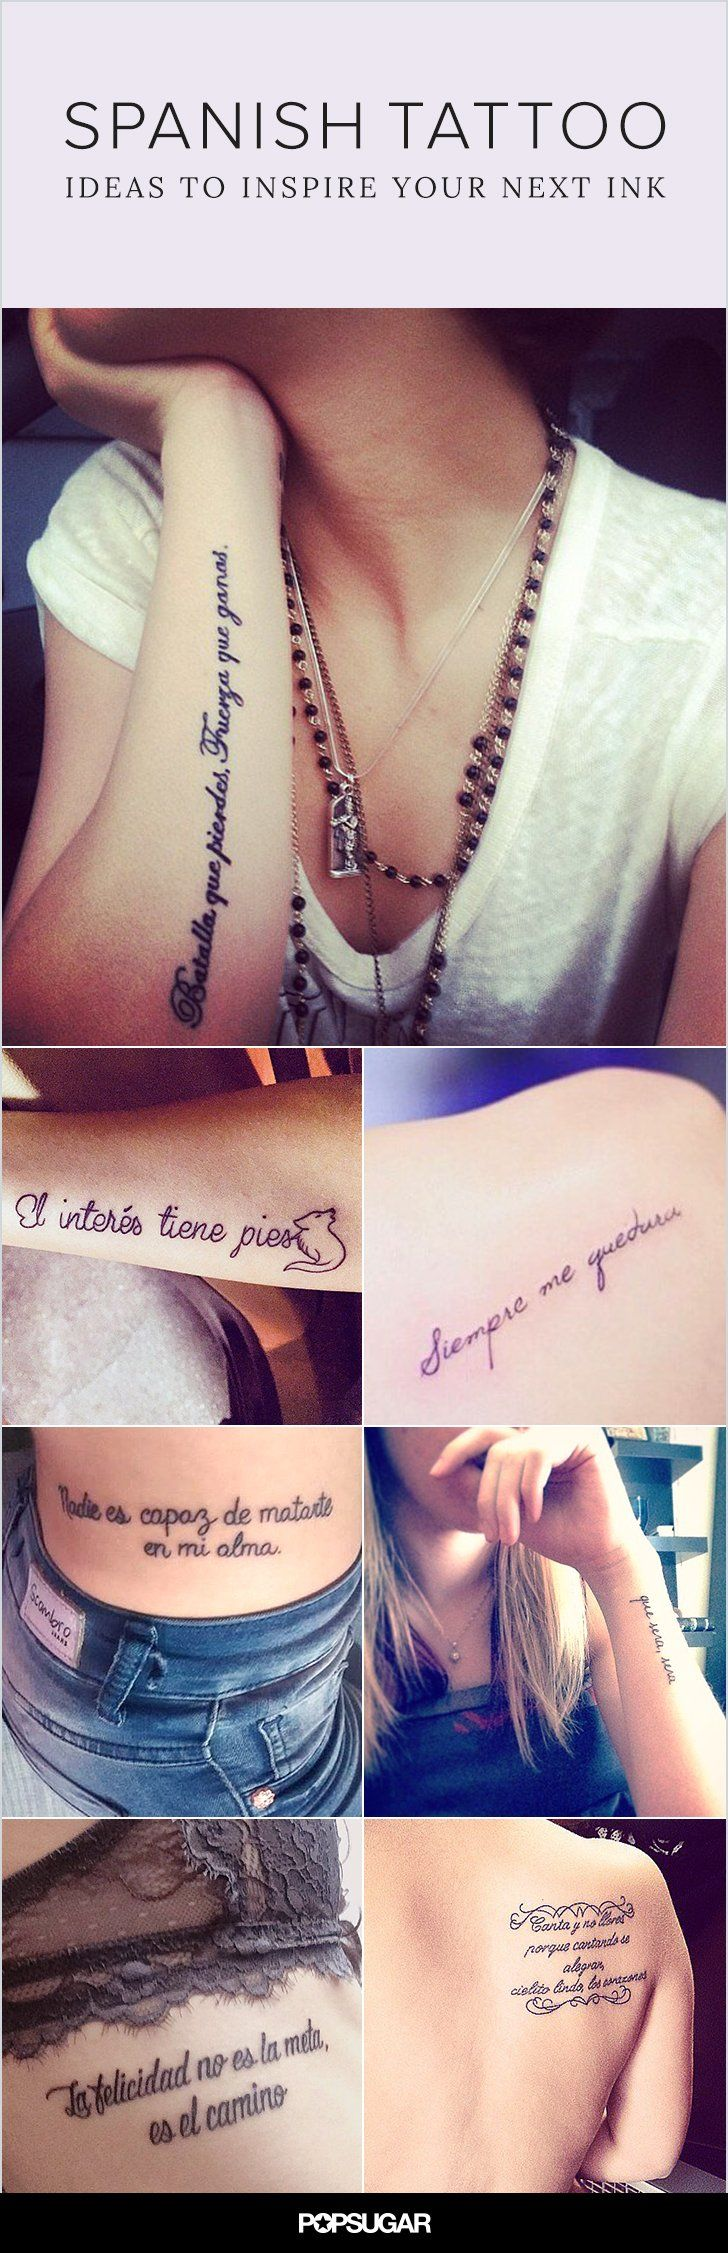 40 meaningful tattoo quotes to get inspired - 30 Meaningful Tattoos In Spanish You Ll Want Immediately